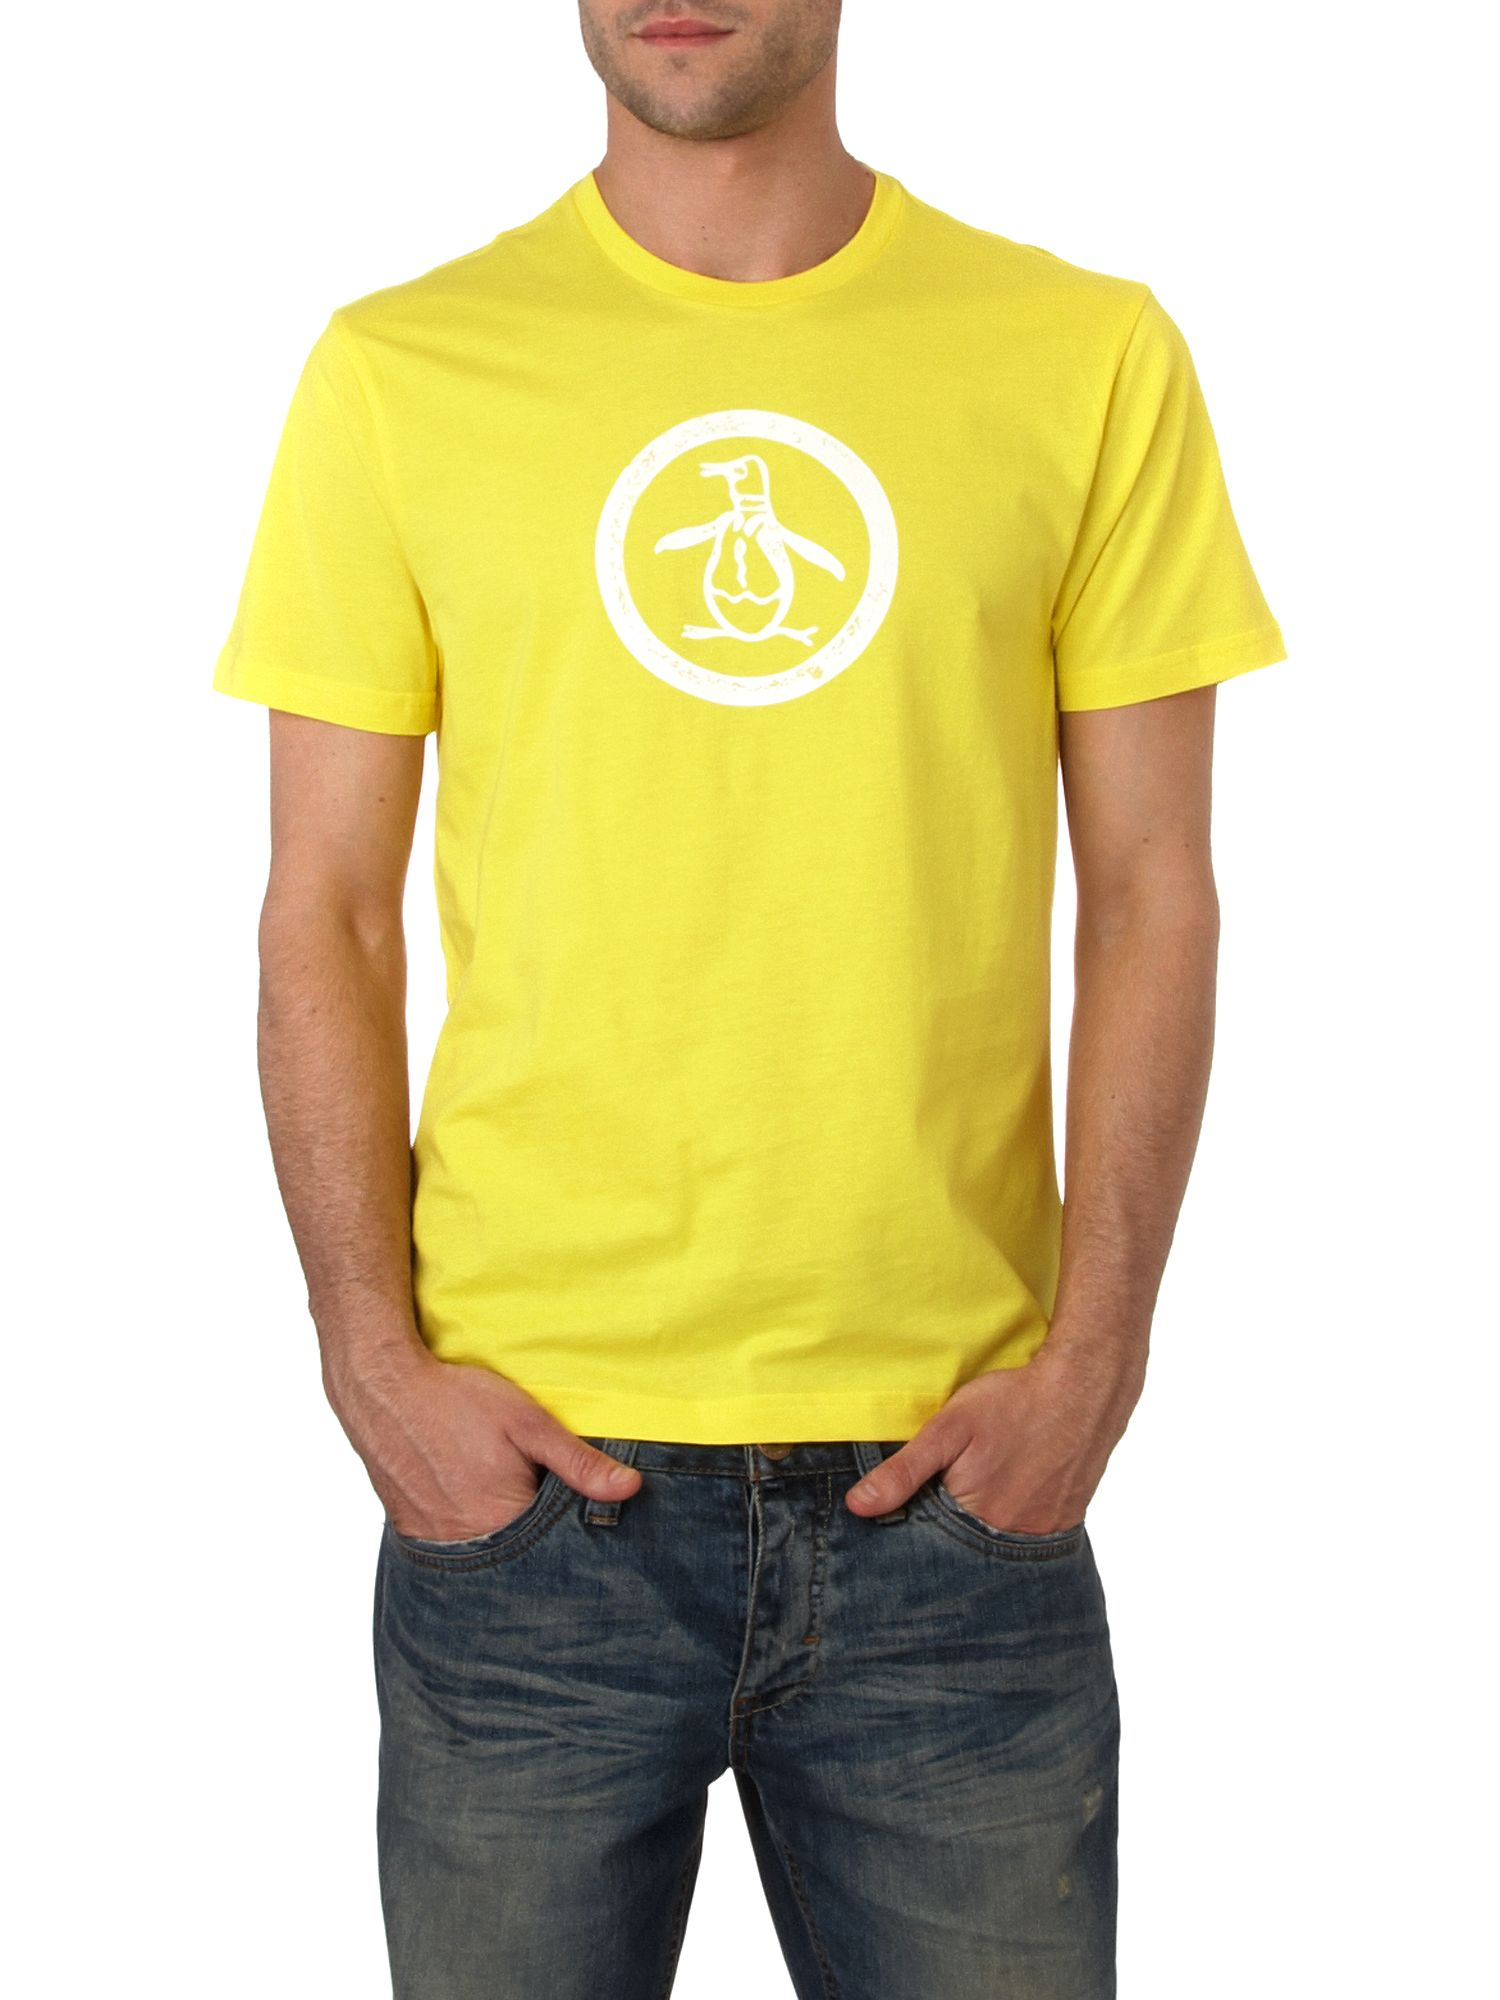 Original Penguin Distressed circle logo T-shirt Yellow product image